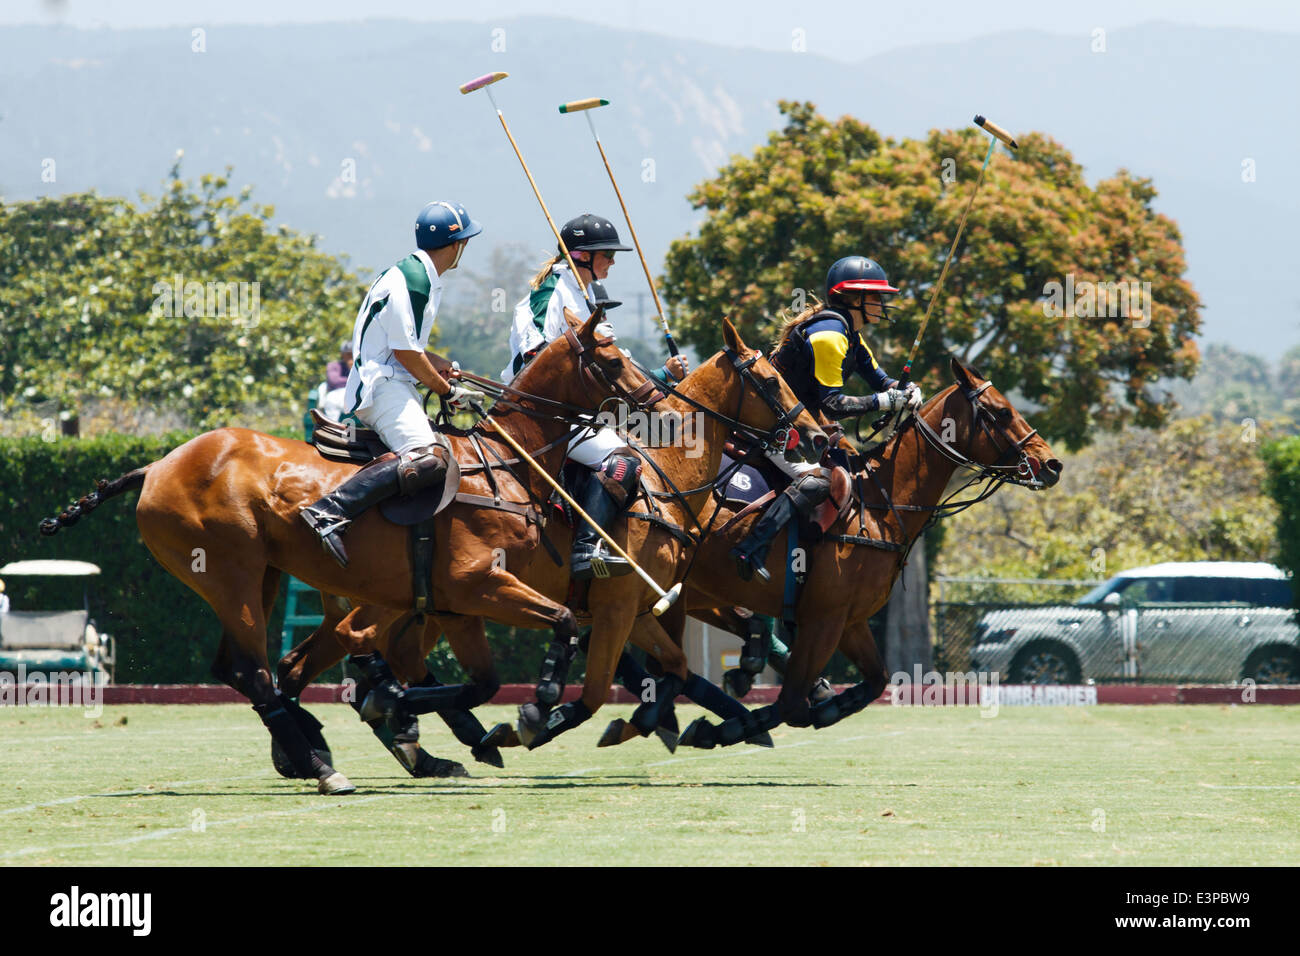 Polo teams race down field in pursuit of the ball - Stock Image